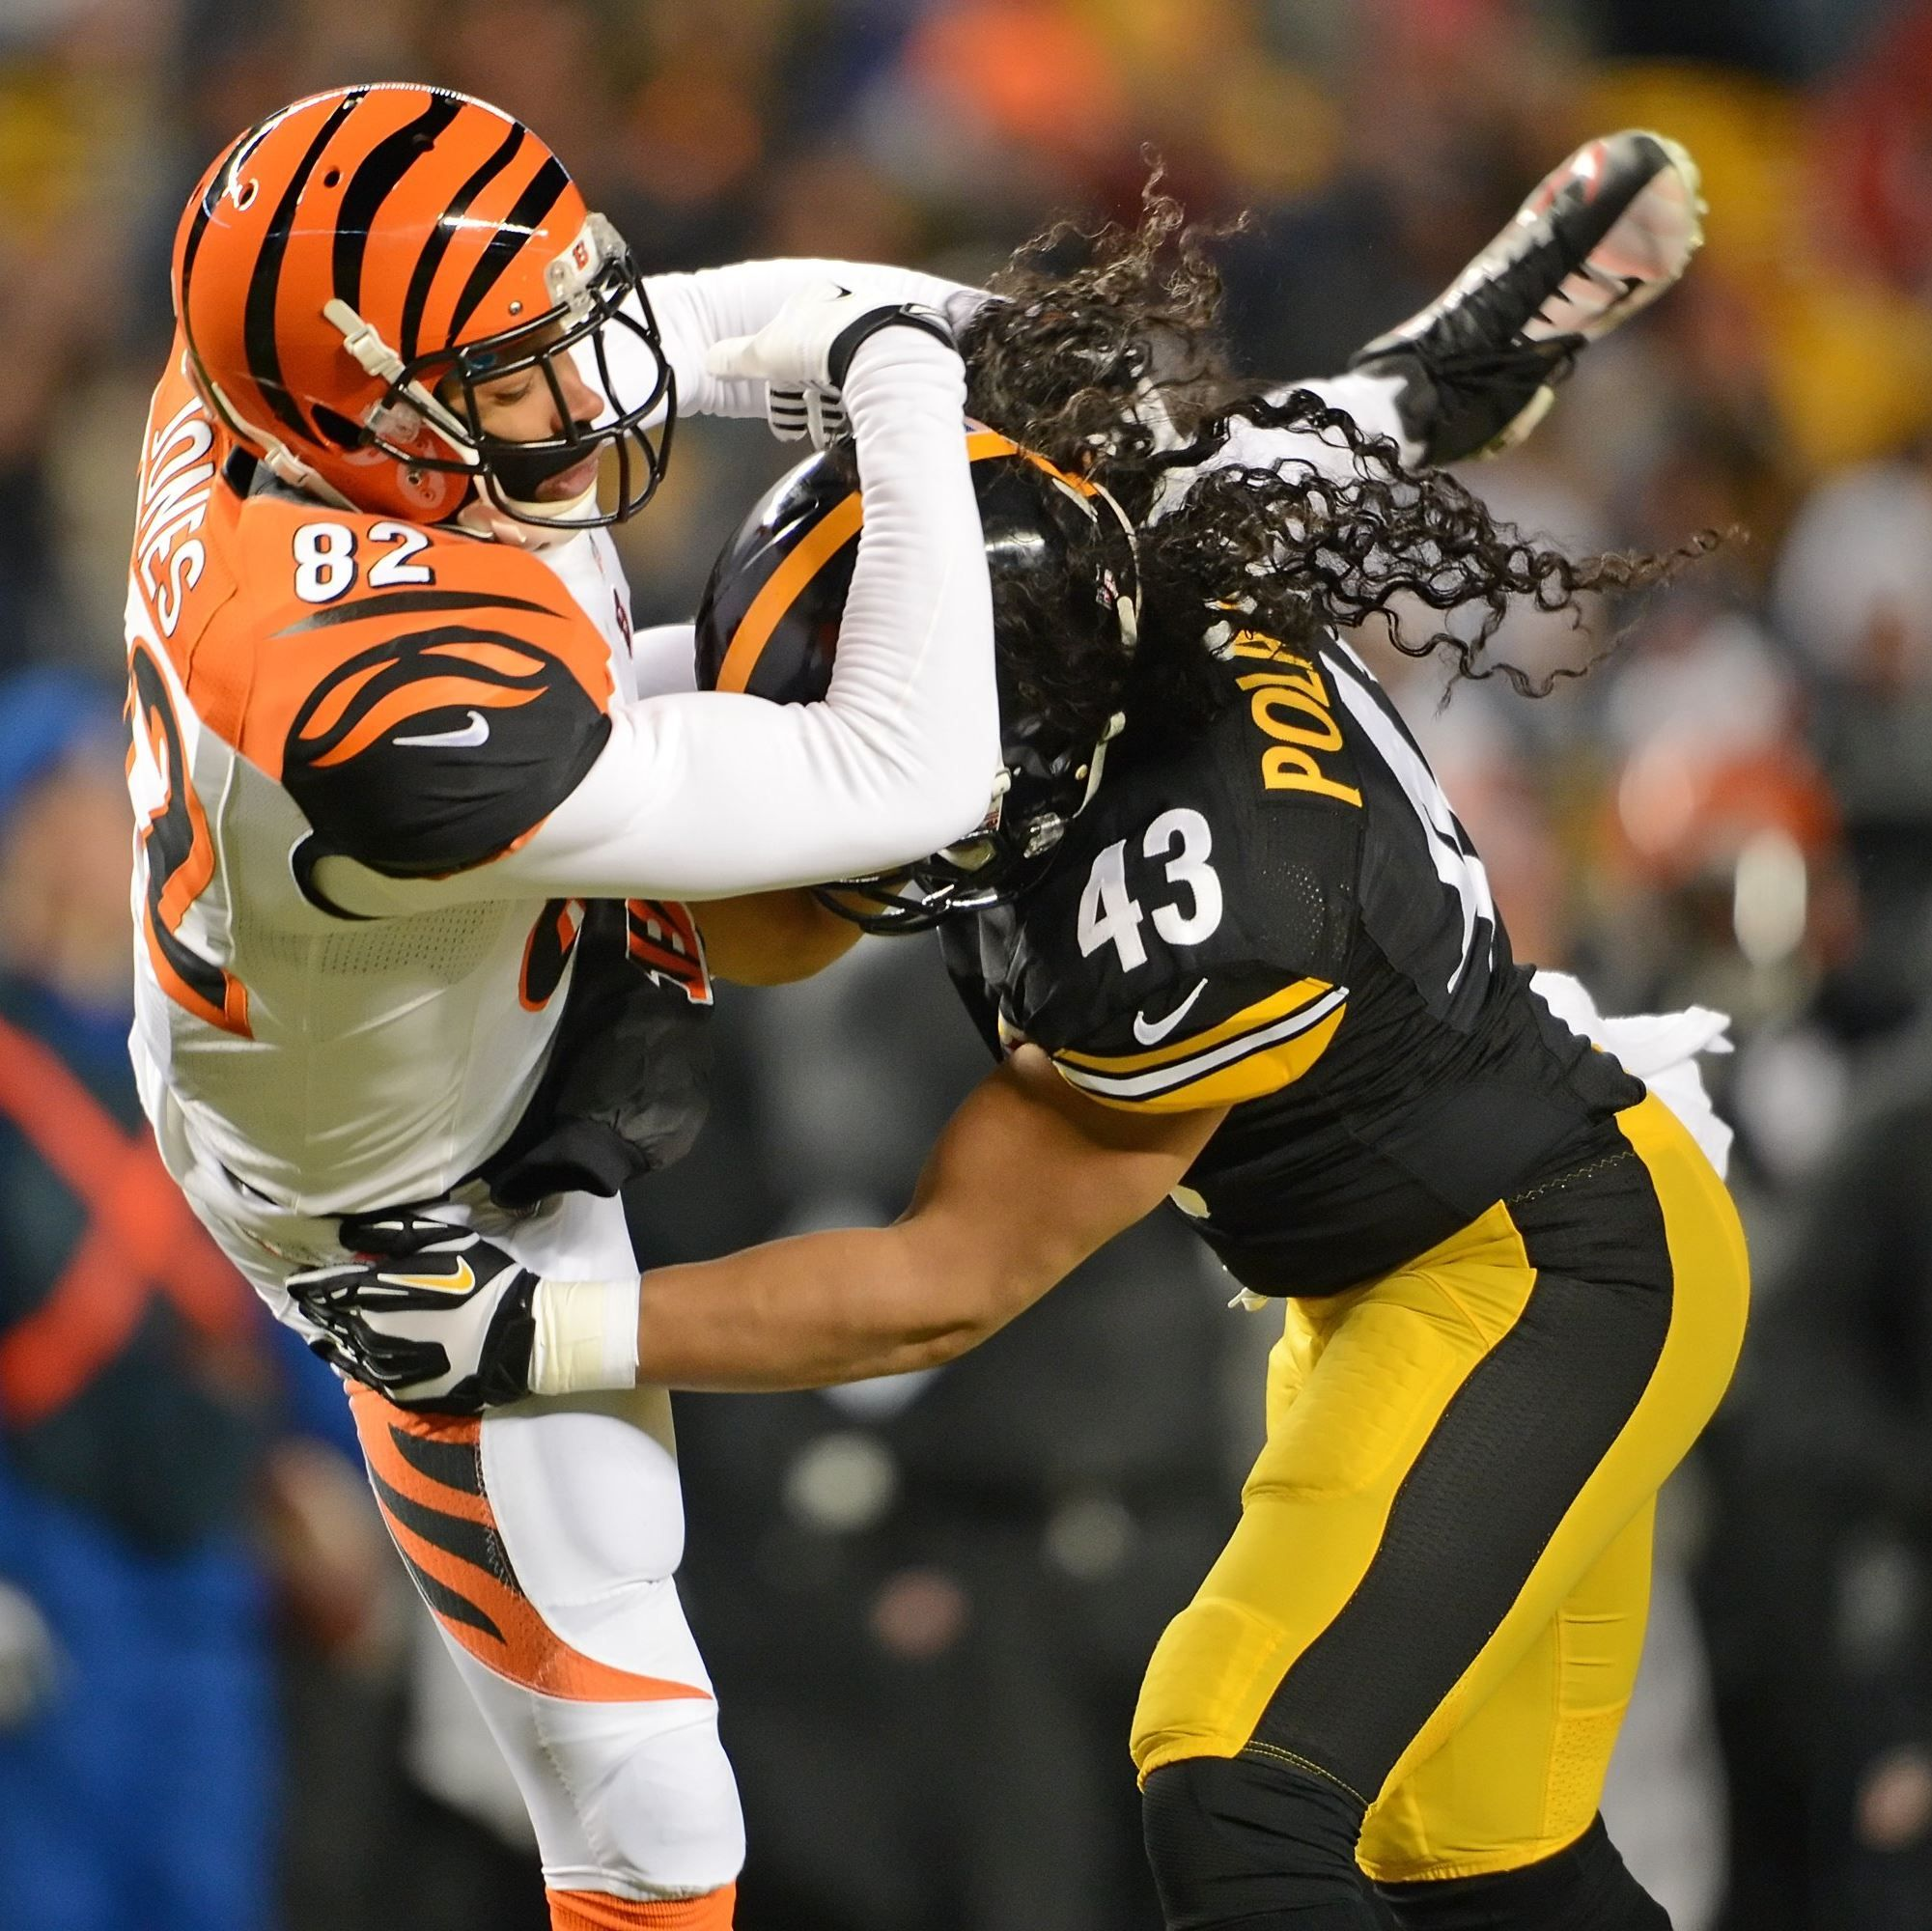 steele0105 Steelers safety Troy Polamalu might be back next season, but a few of his